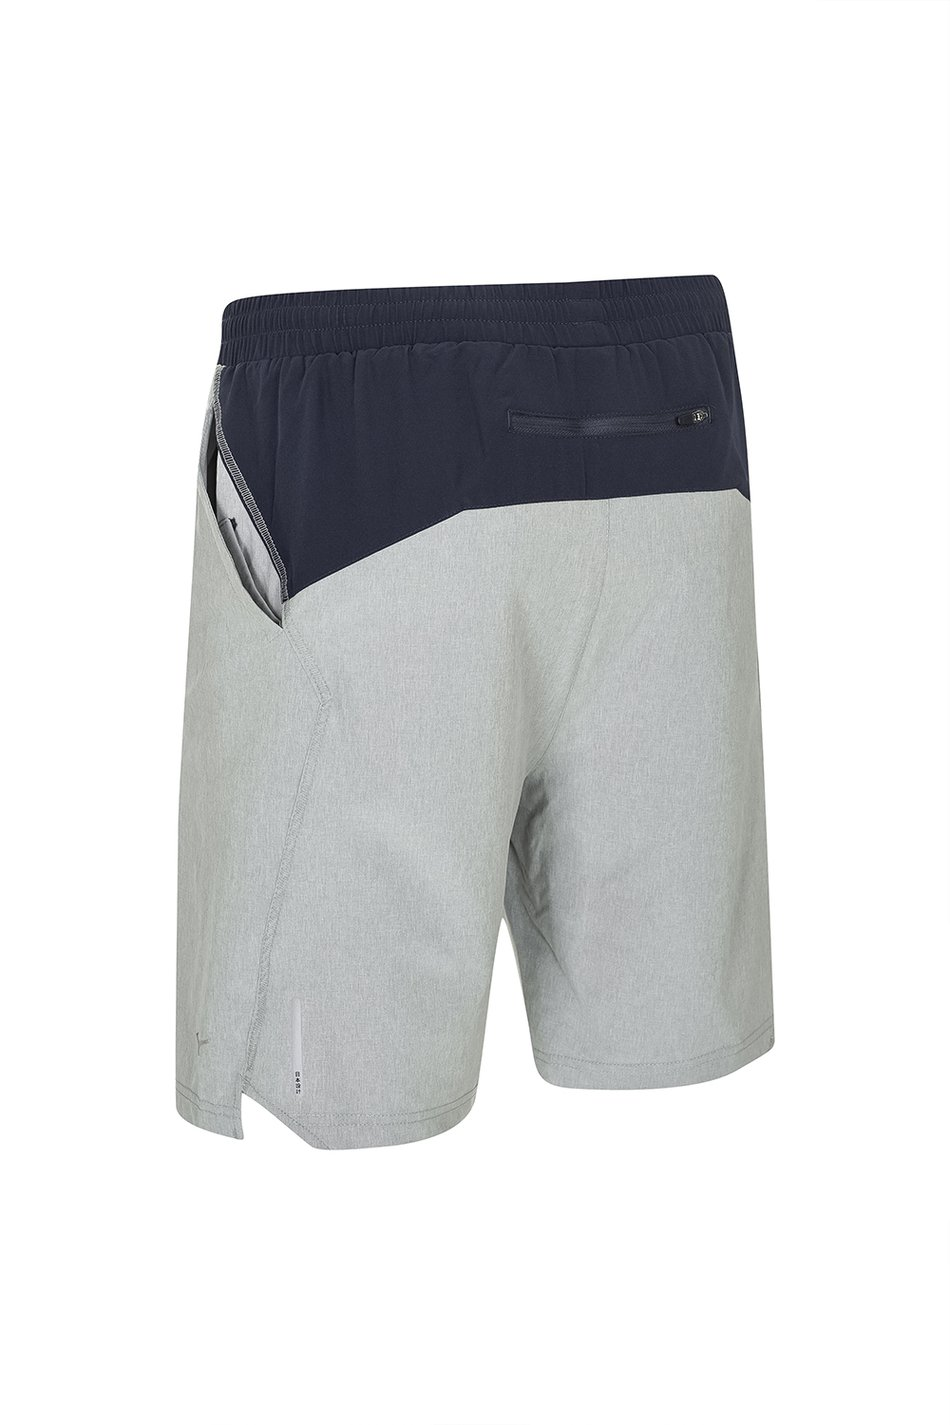 Short Mizuno Creation 20 Masc